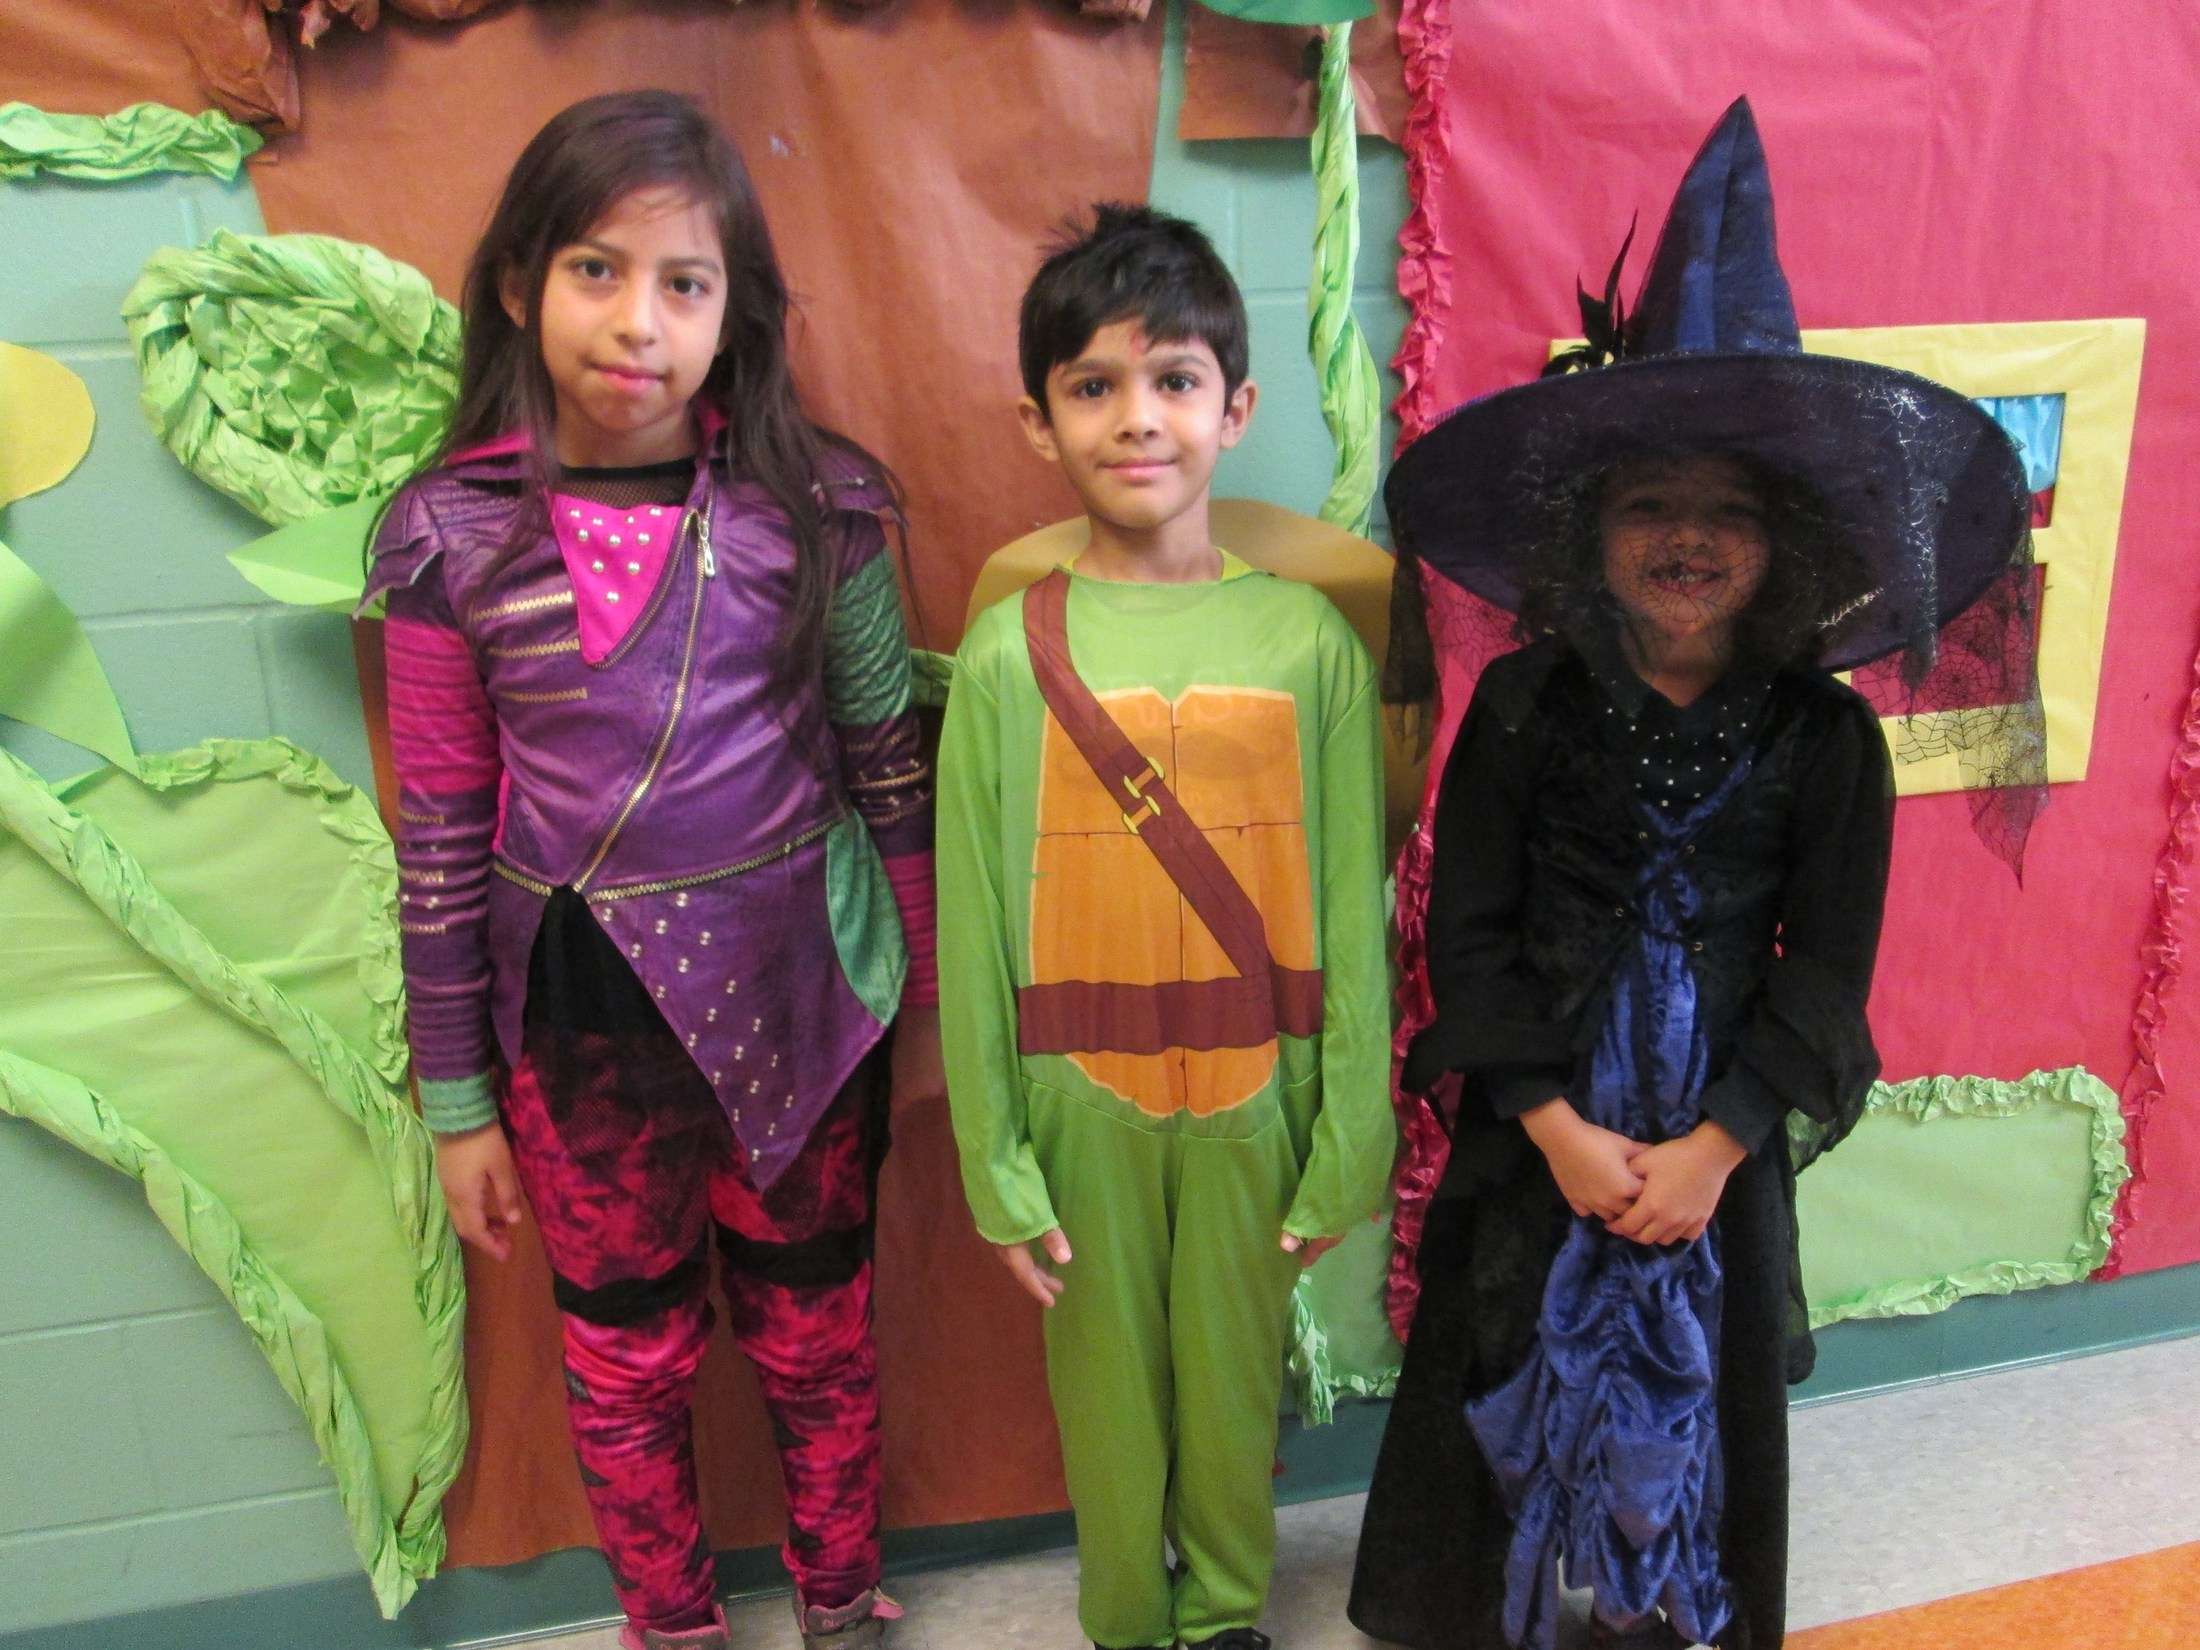 kids proudly wearing their costumes